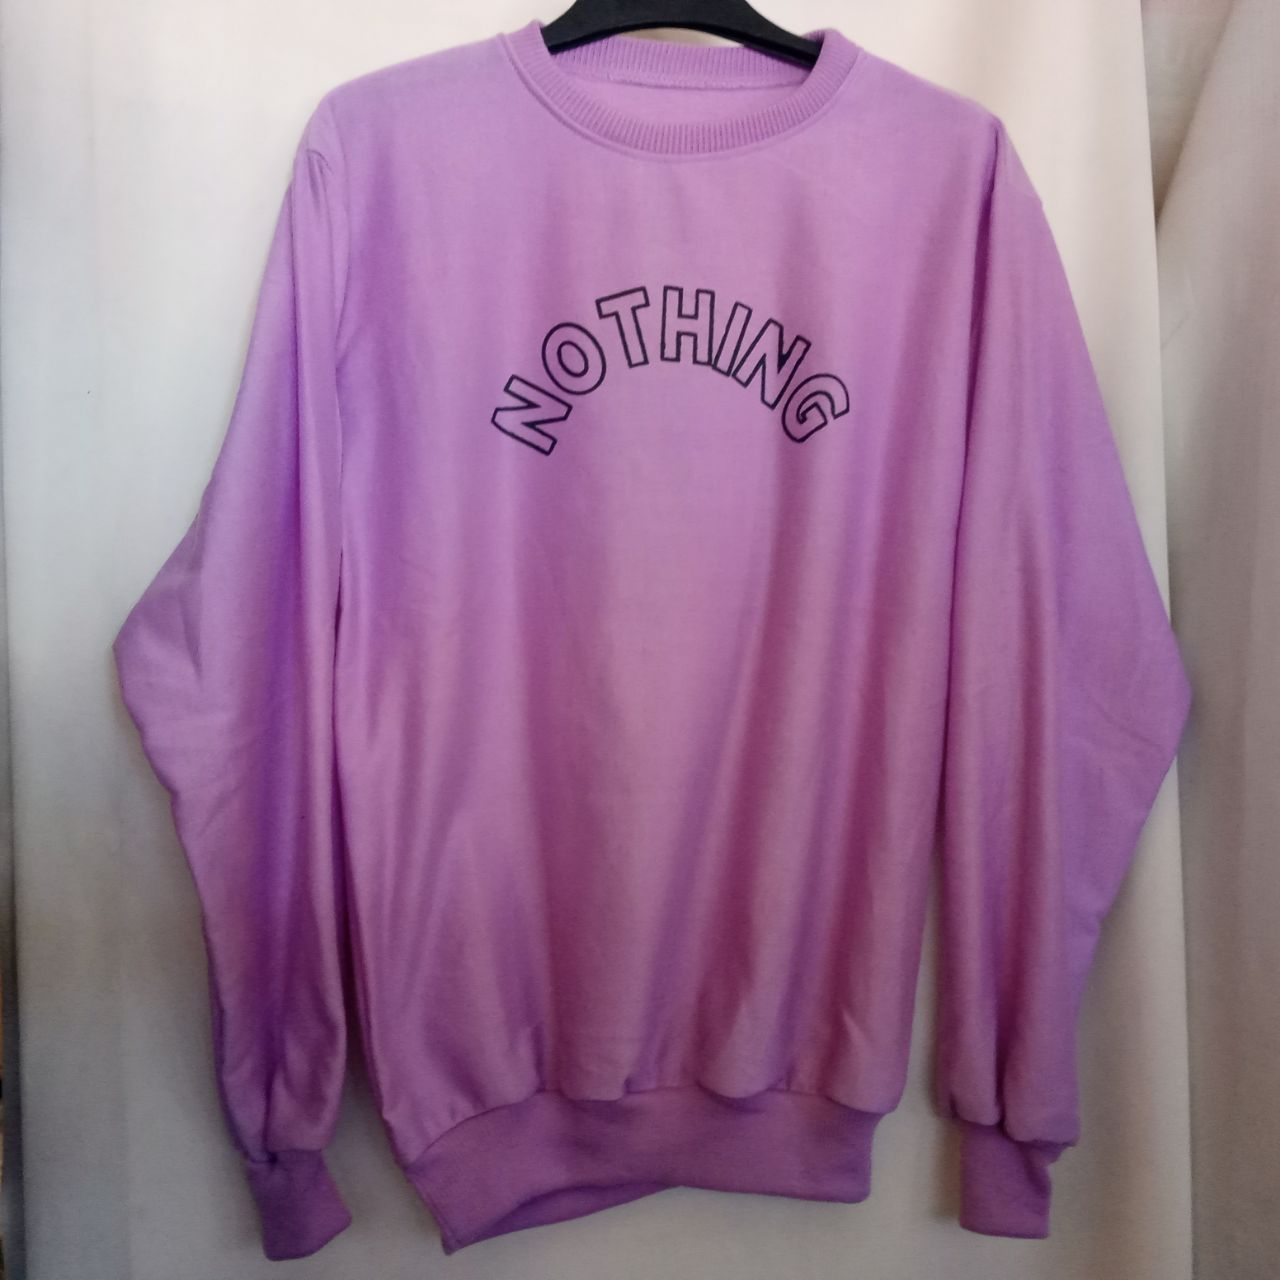 ini adalah Sweater Nothing Lilac, size: LD 90cm, Panjang 60cm, material: Fleece, color: purple, brand: jaketindonesia, age_group: all ages, gender: unisex